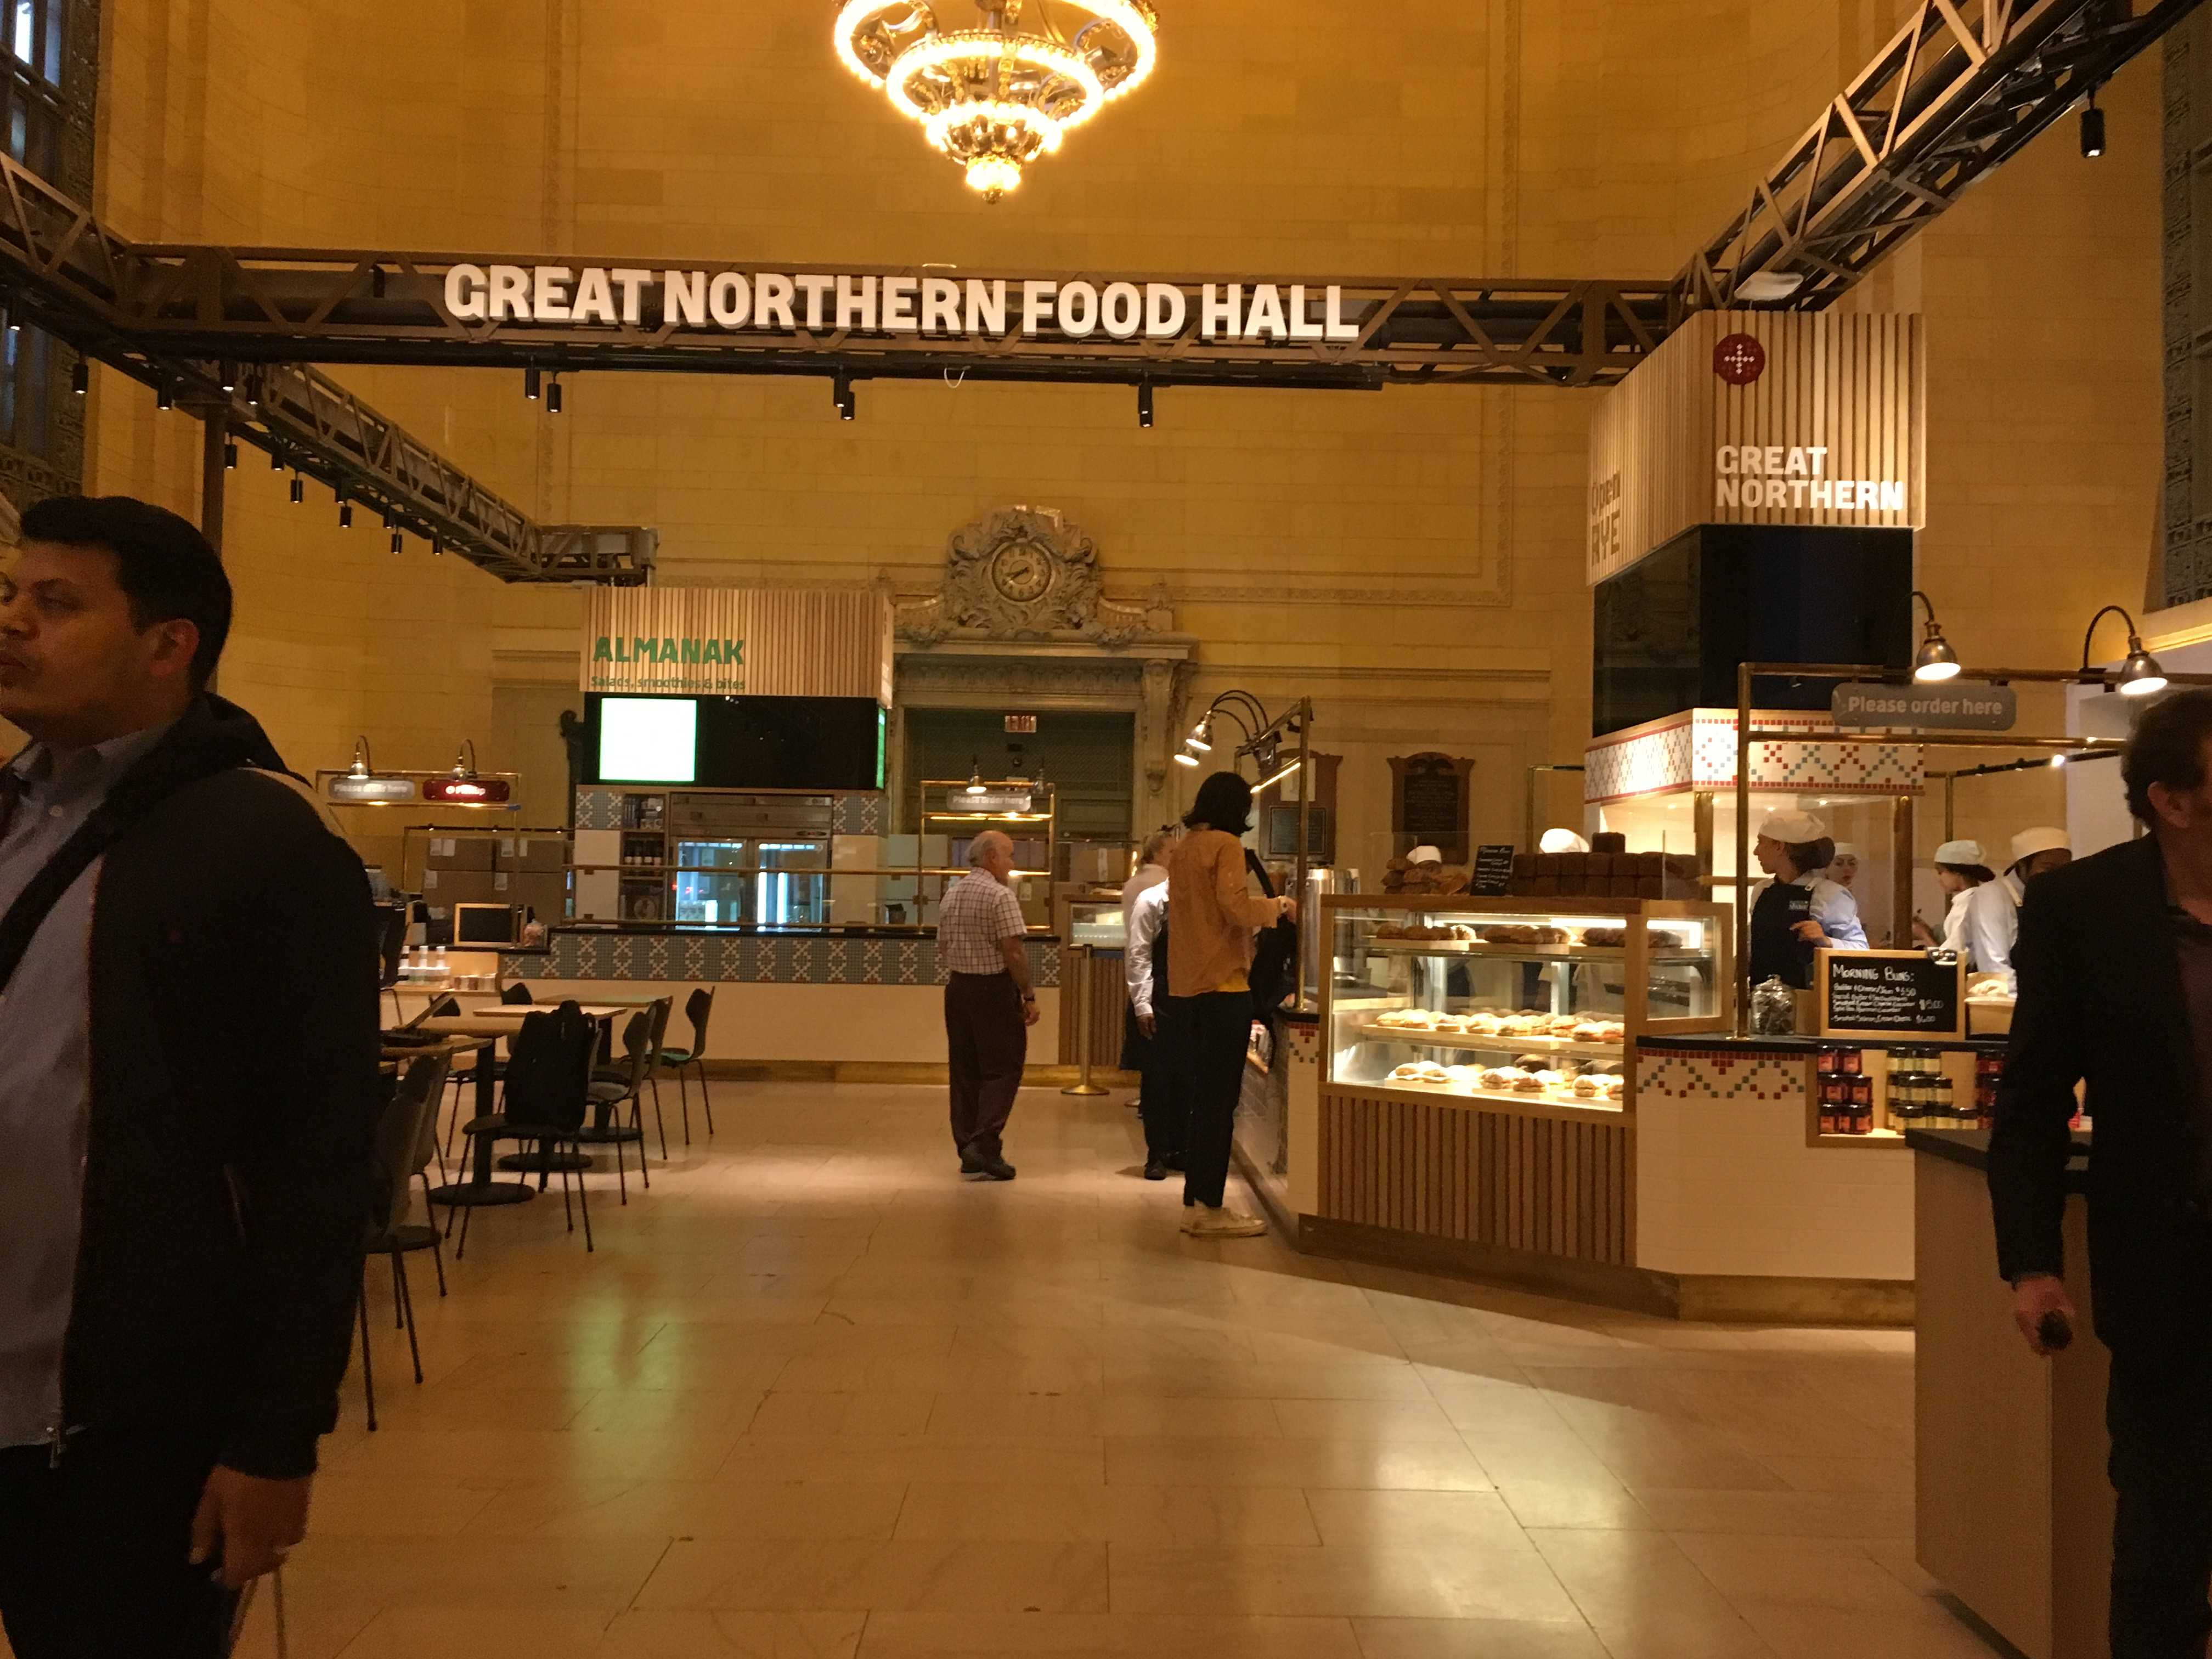 Great Northern Food Hall great northern food hall opens in nyc's grand central terminal